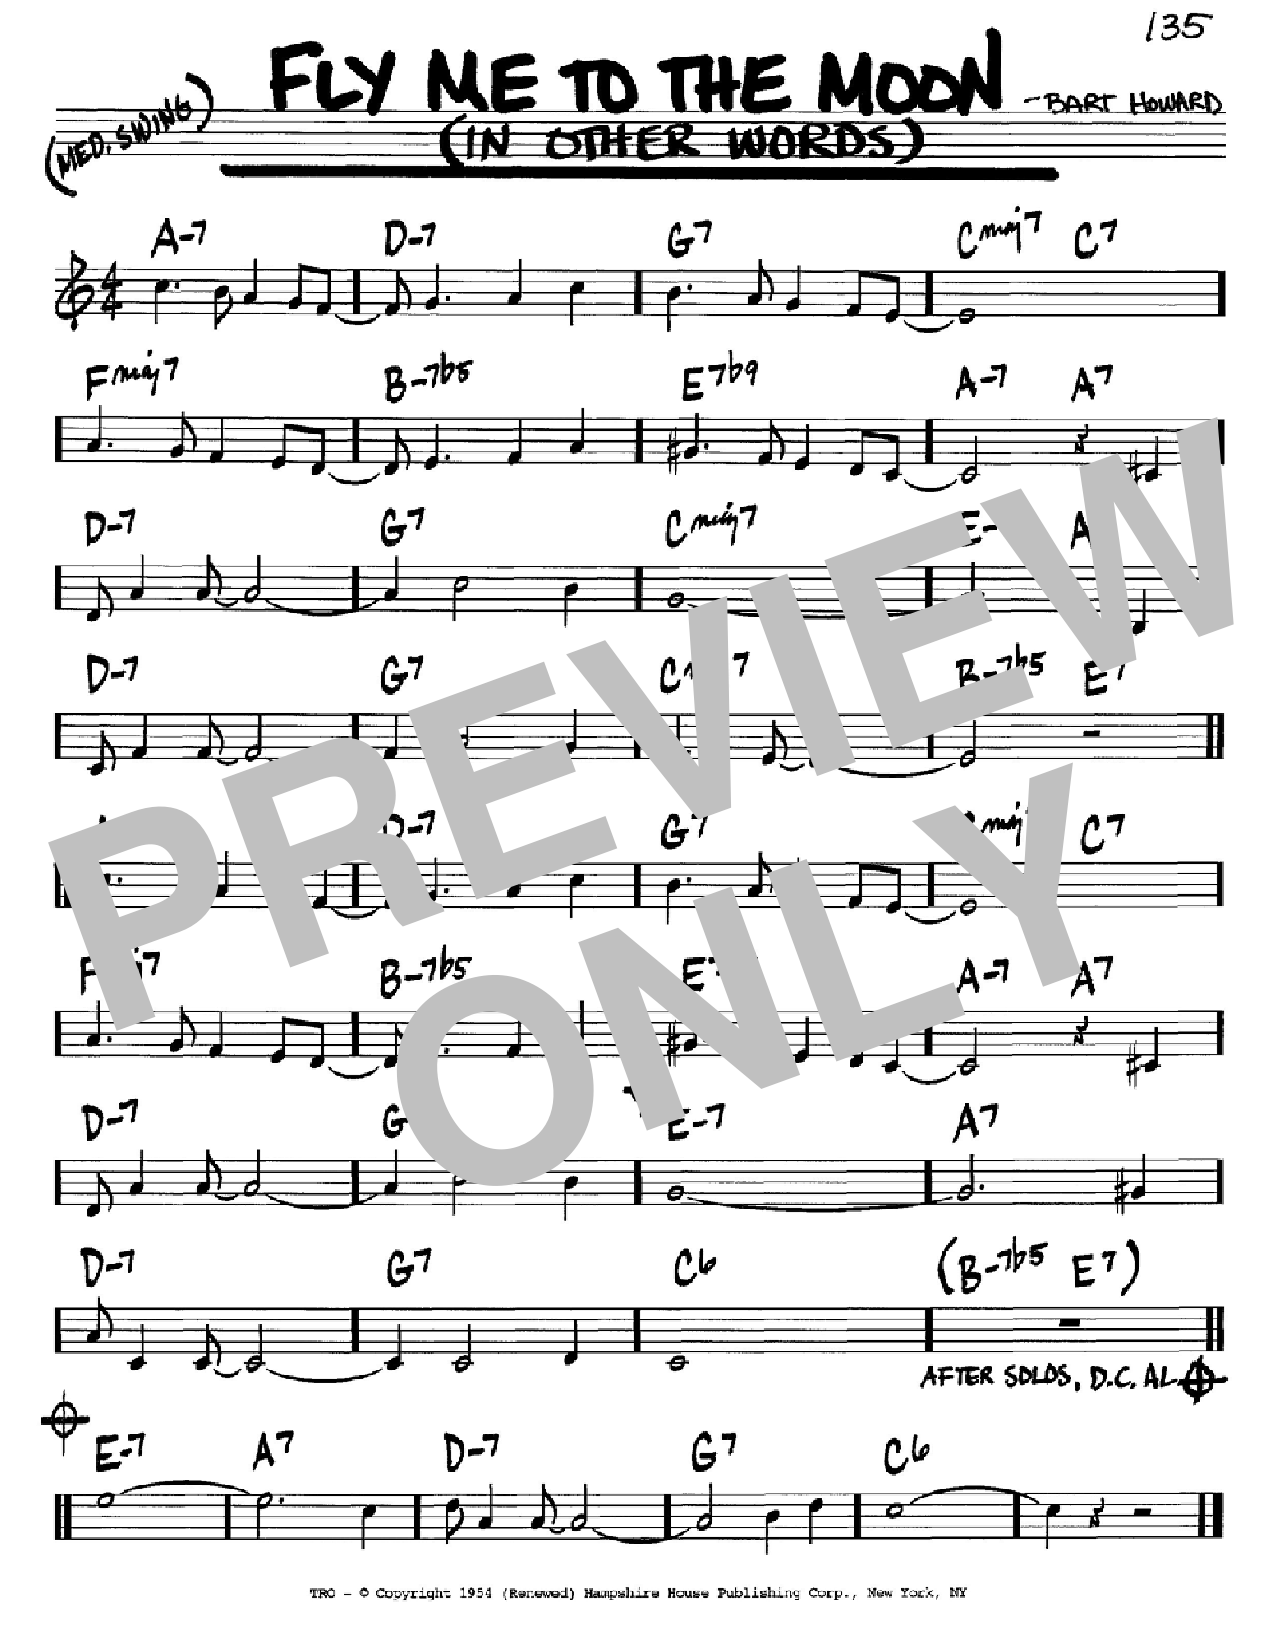 Fly Me To The Moon (In Other Words) sheet music for voice and other instruments (C) by Bart Howard